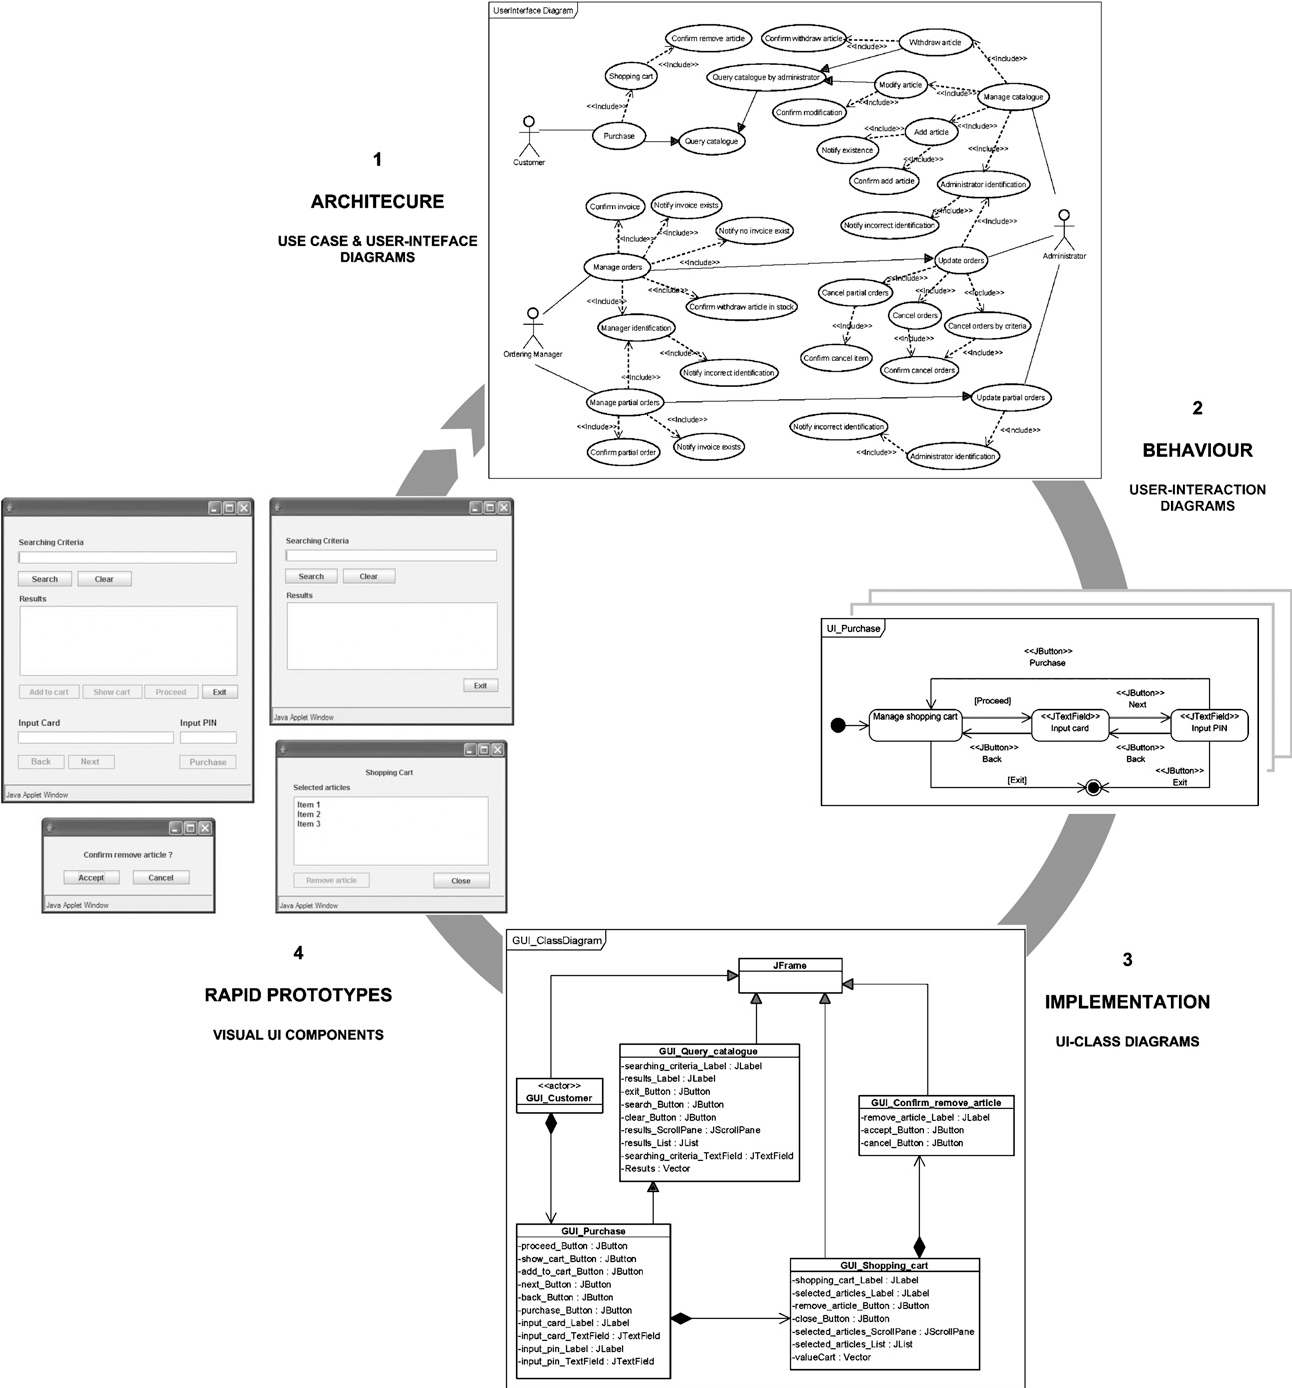 an extension of uml for the modeling of wimp user